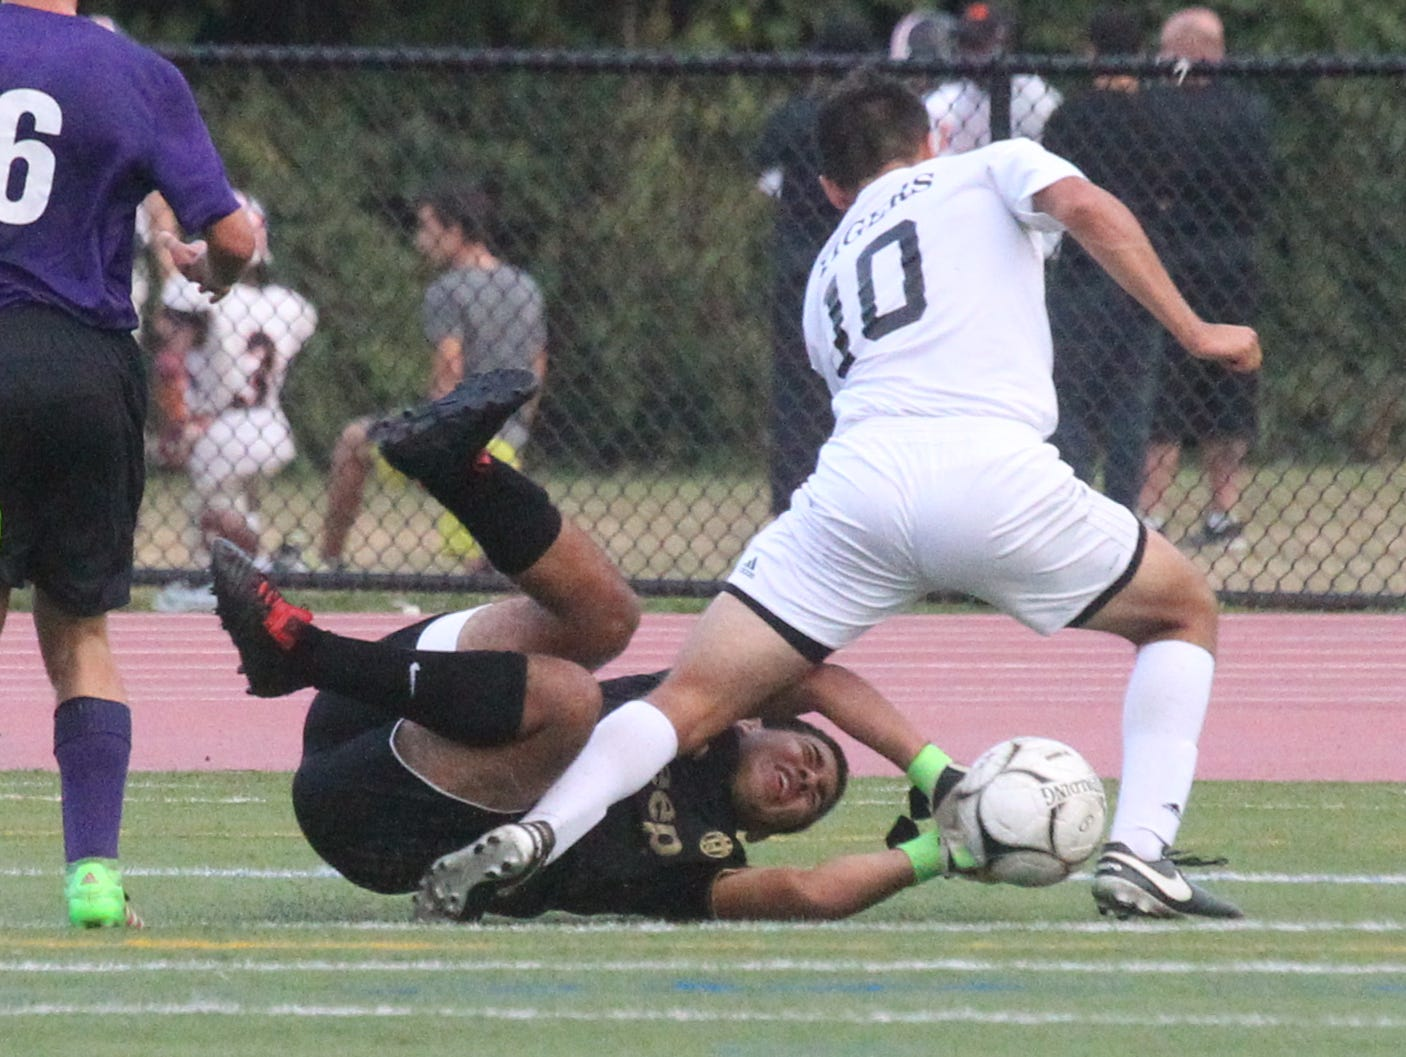 New Rochelle goalie Danny Ayala stops White Plains' Alessandro Battaglia during their game at White Plains Sept. 26, 2016. New Rochelle won 2-0.